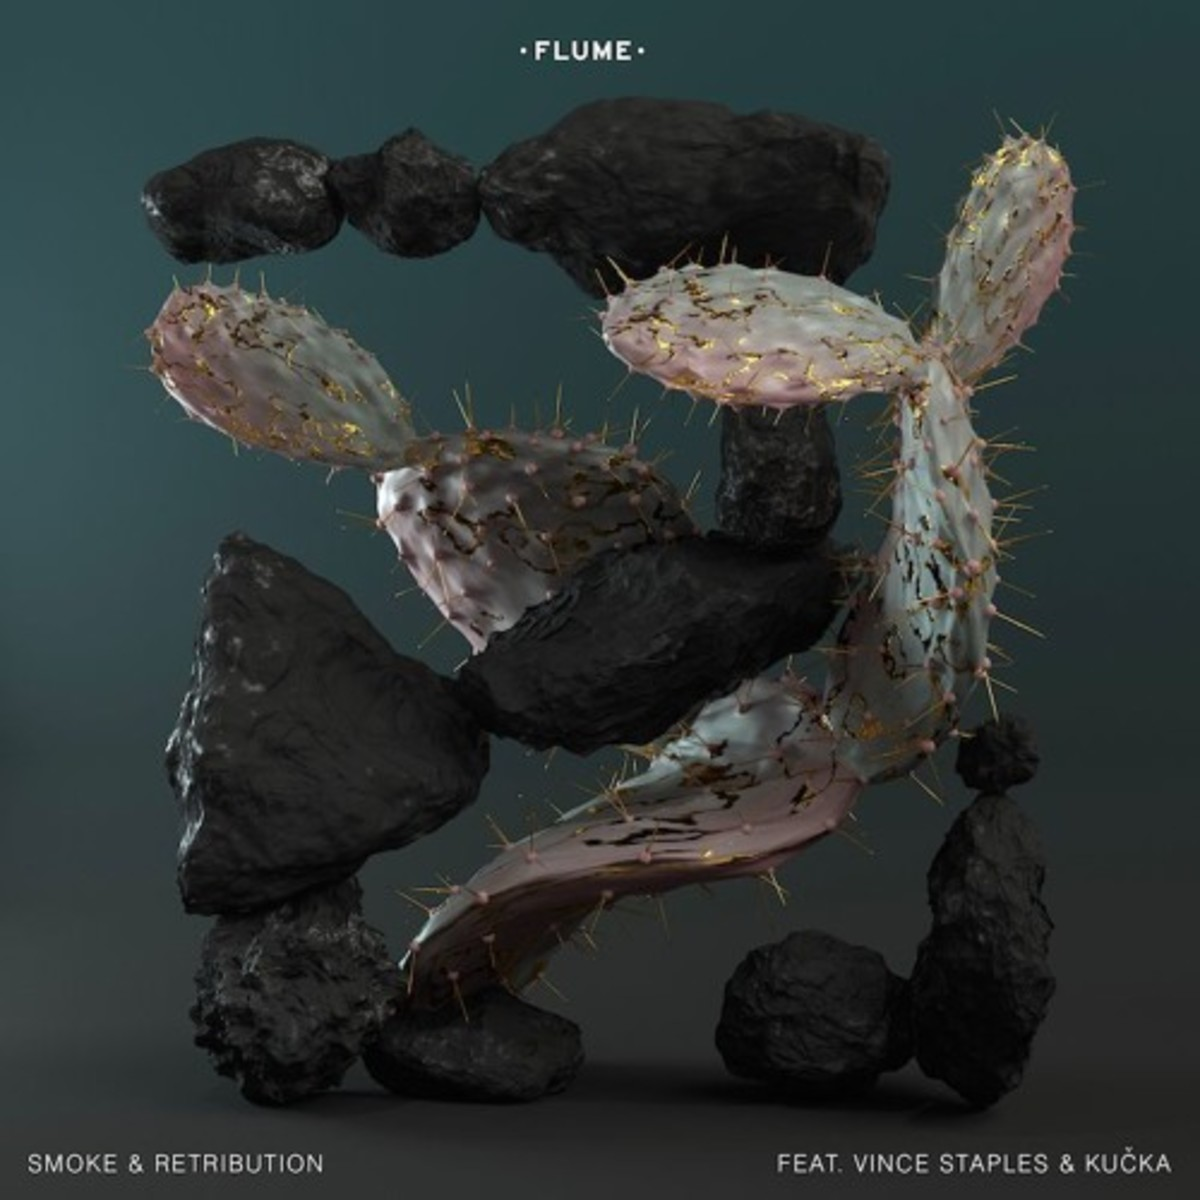 flume-smoke-retribution.jpg